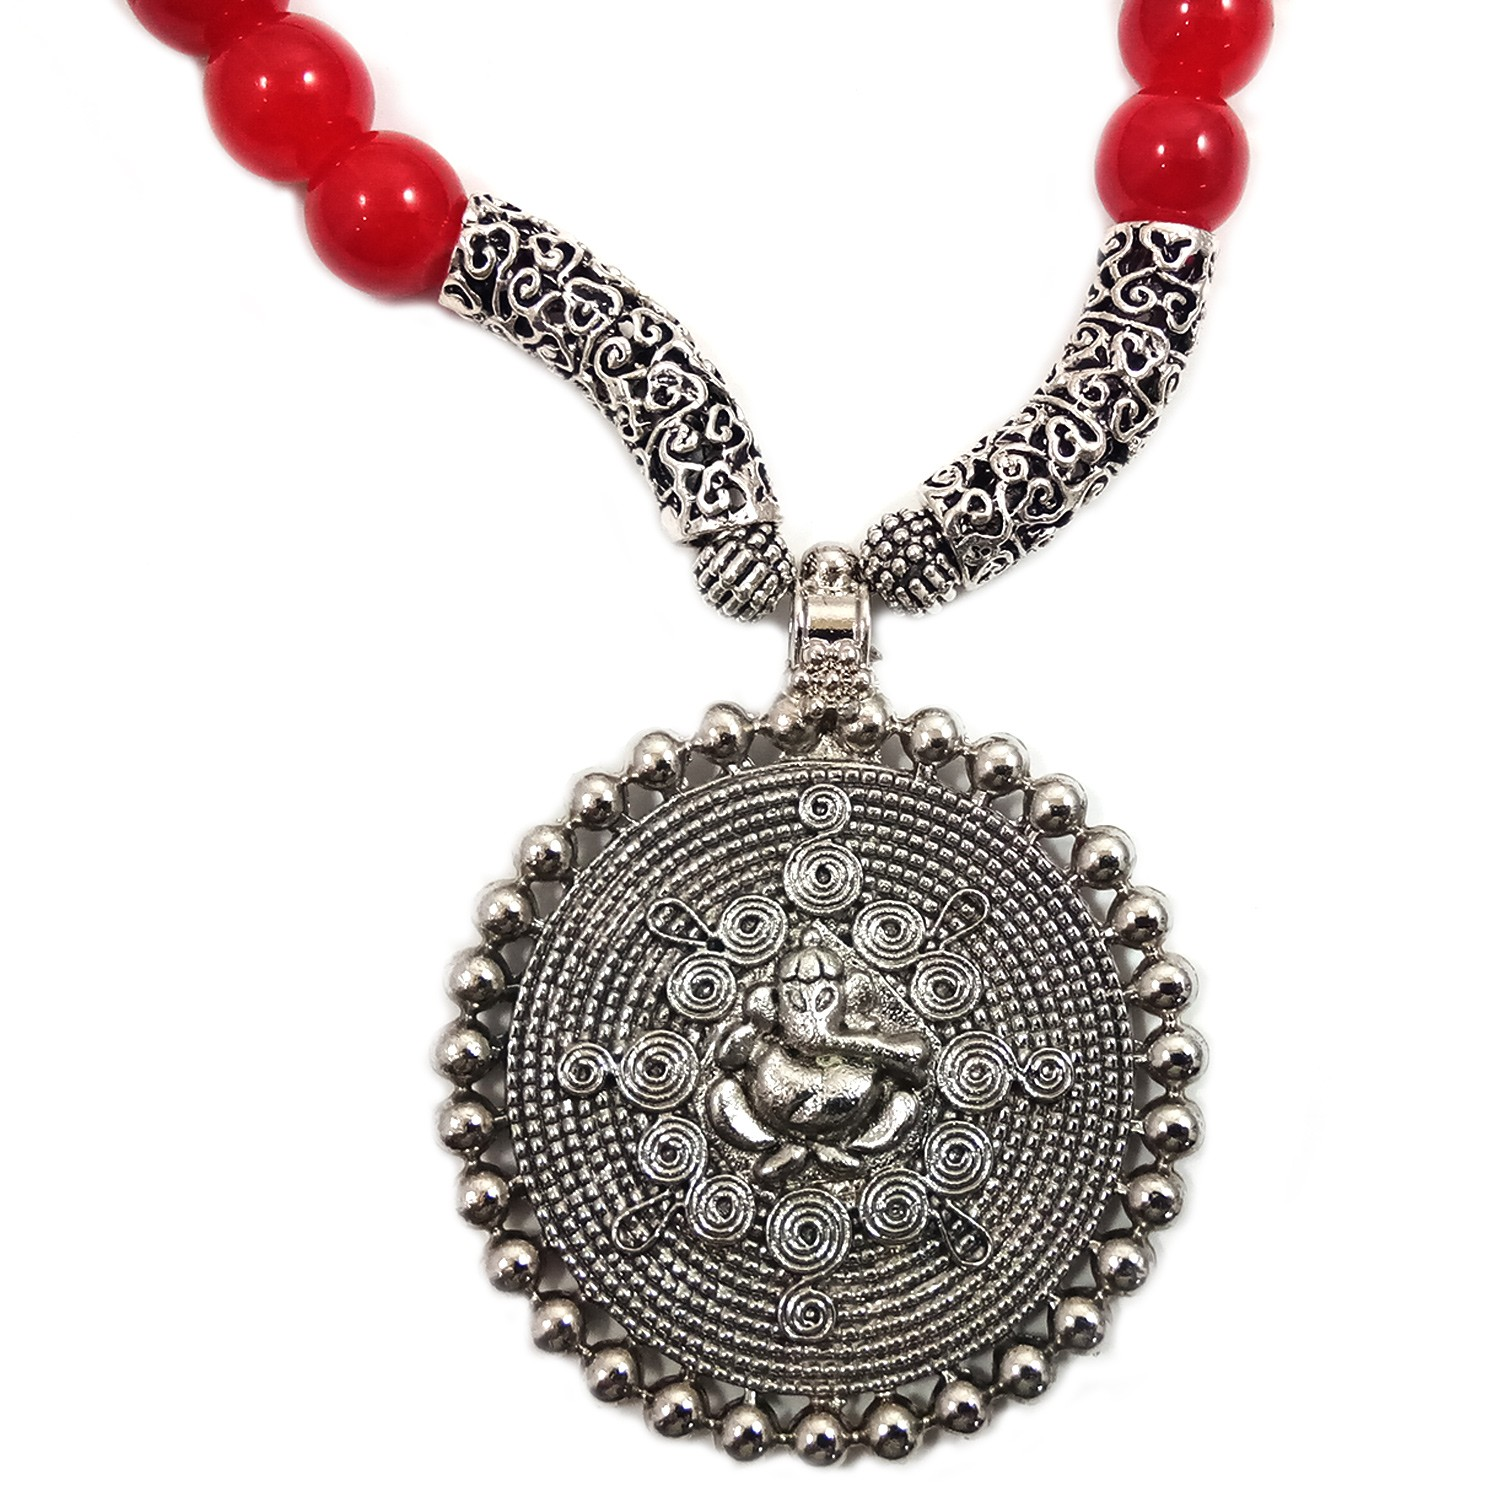 Handmade Costume Fashion Jewelry Red/Silver  Necklace & Earrings (NER) by Women Groups